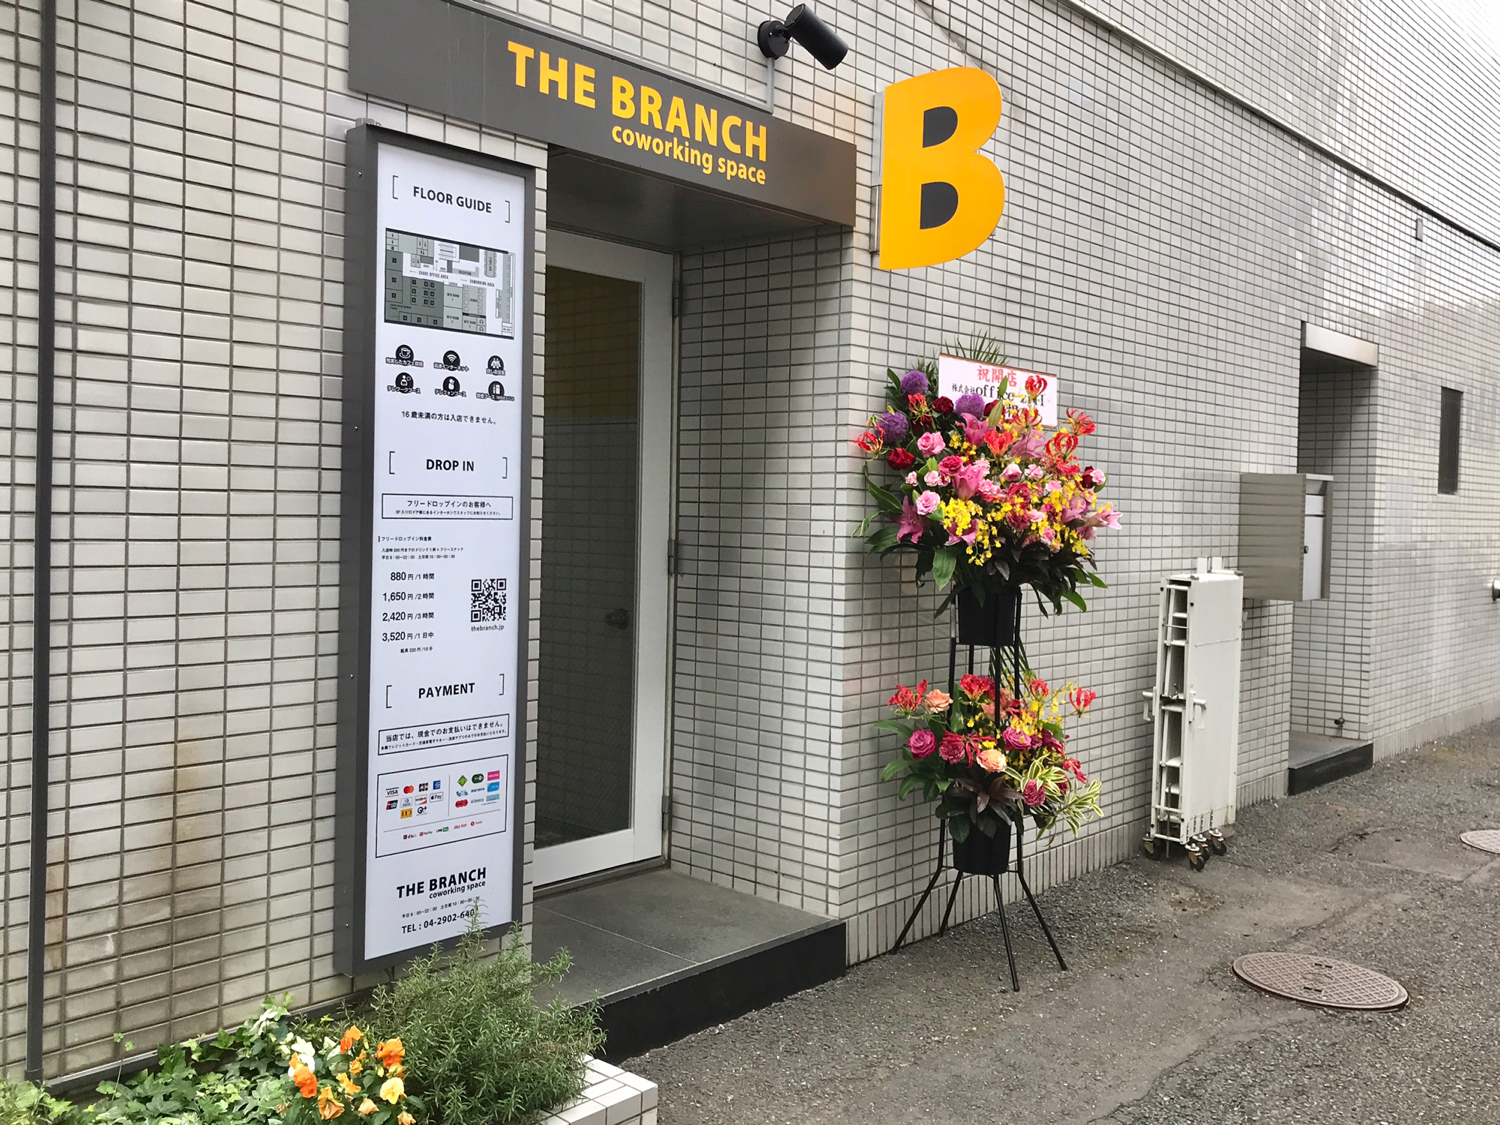 THE BRANCH coworking space